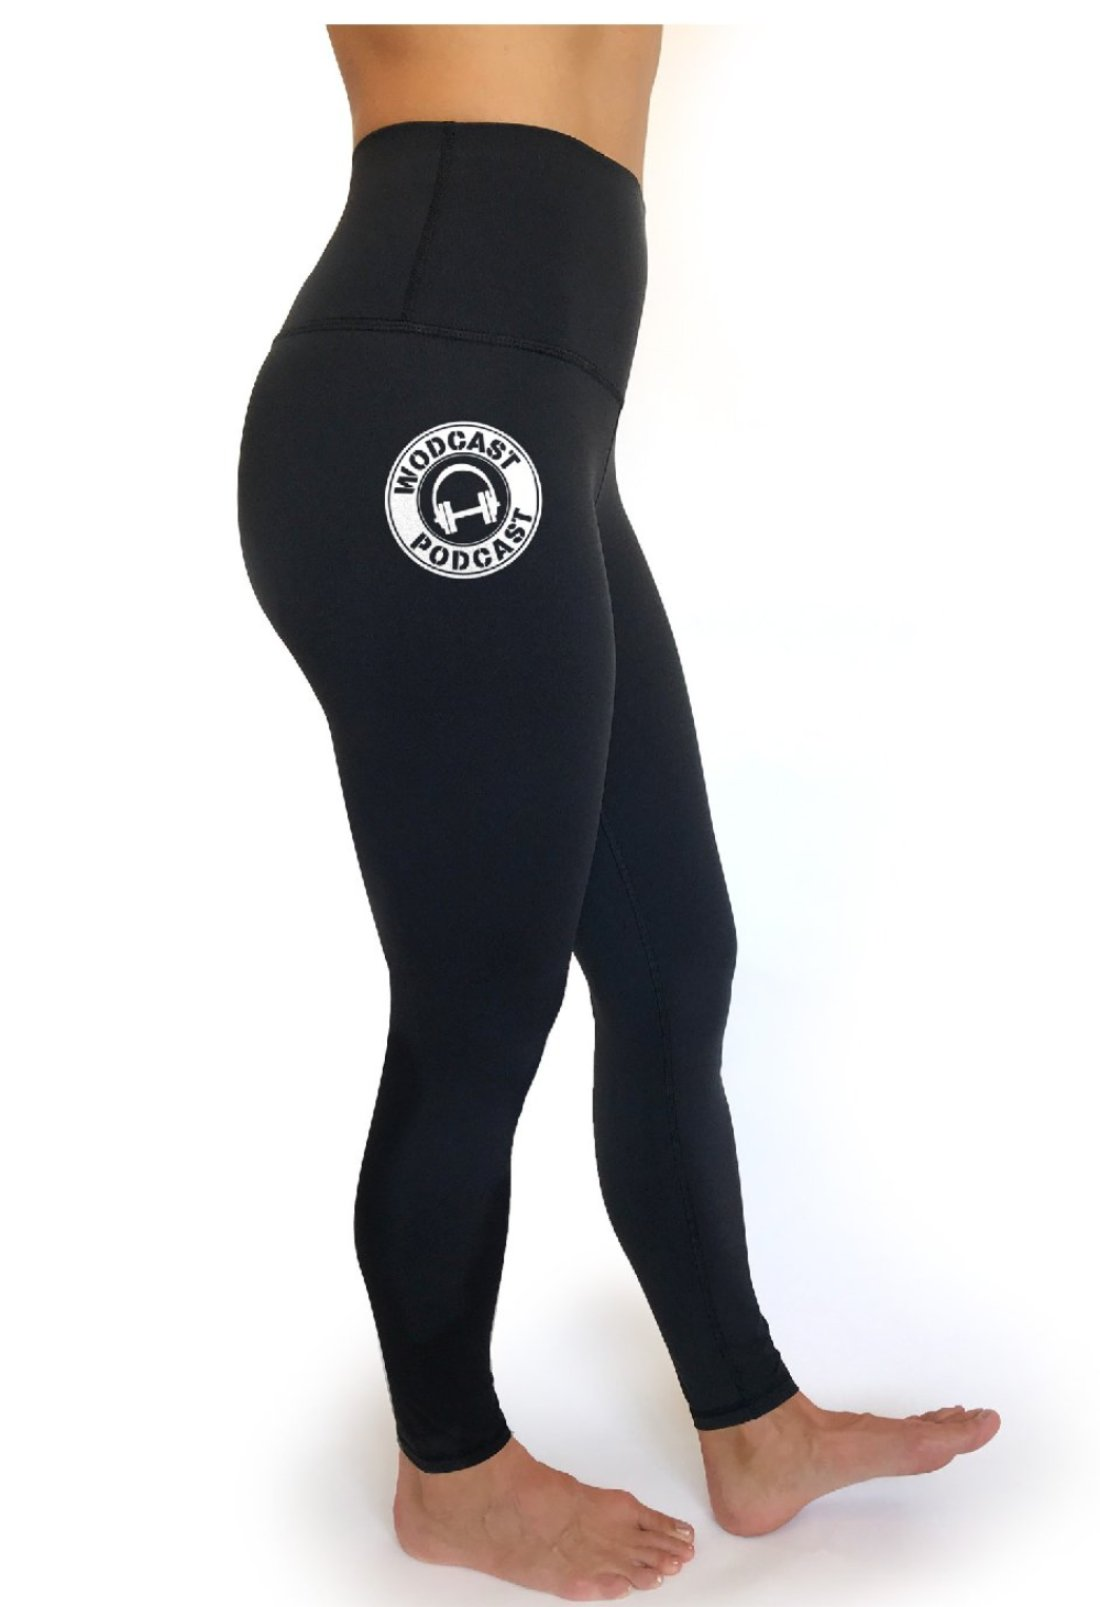 Wodcast Podcast - Rise Up Legging Black - High Waist, 7/8 length